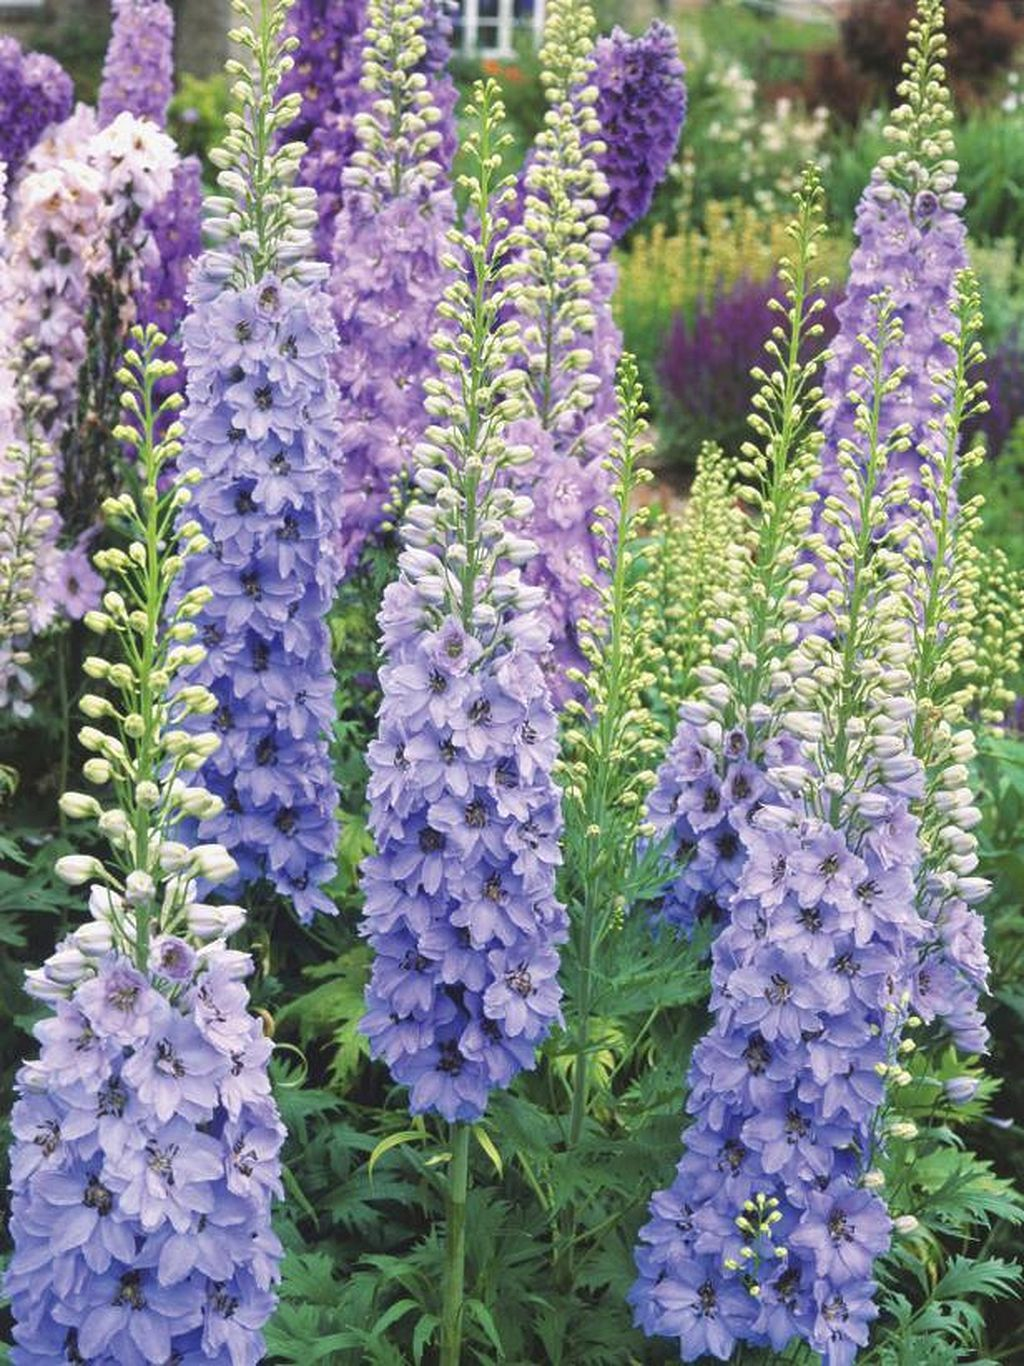 Stunning 20 perennial plants garden ideas httpsgardenmagz20 use for my humminbird garden hummingbird plants 15 photos want to attract hummingbirds consider these flowers that hummingbirds love to visit mightylinksfo Choice Image